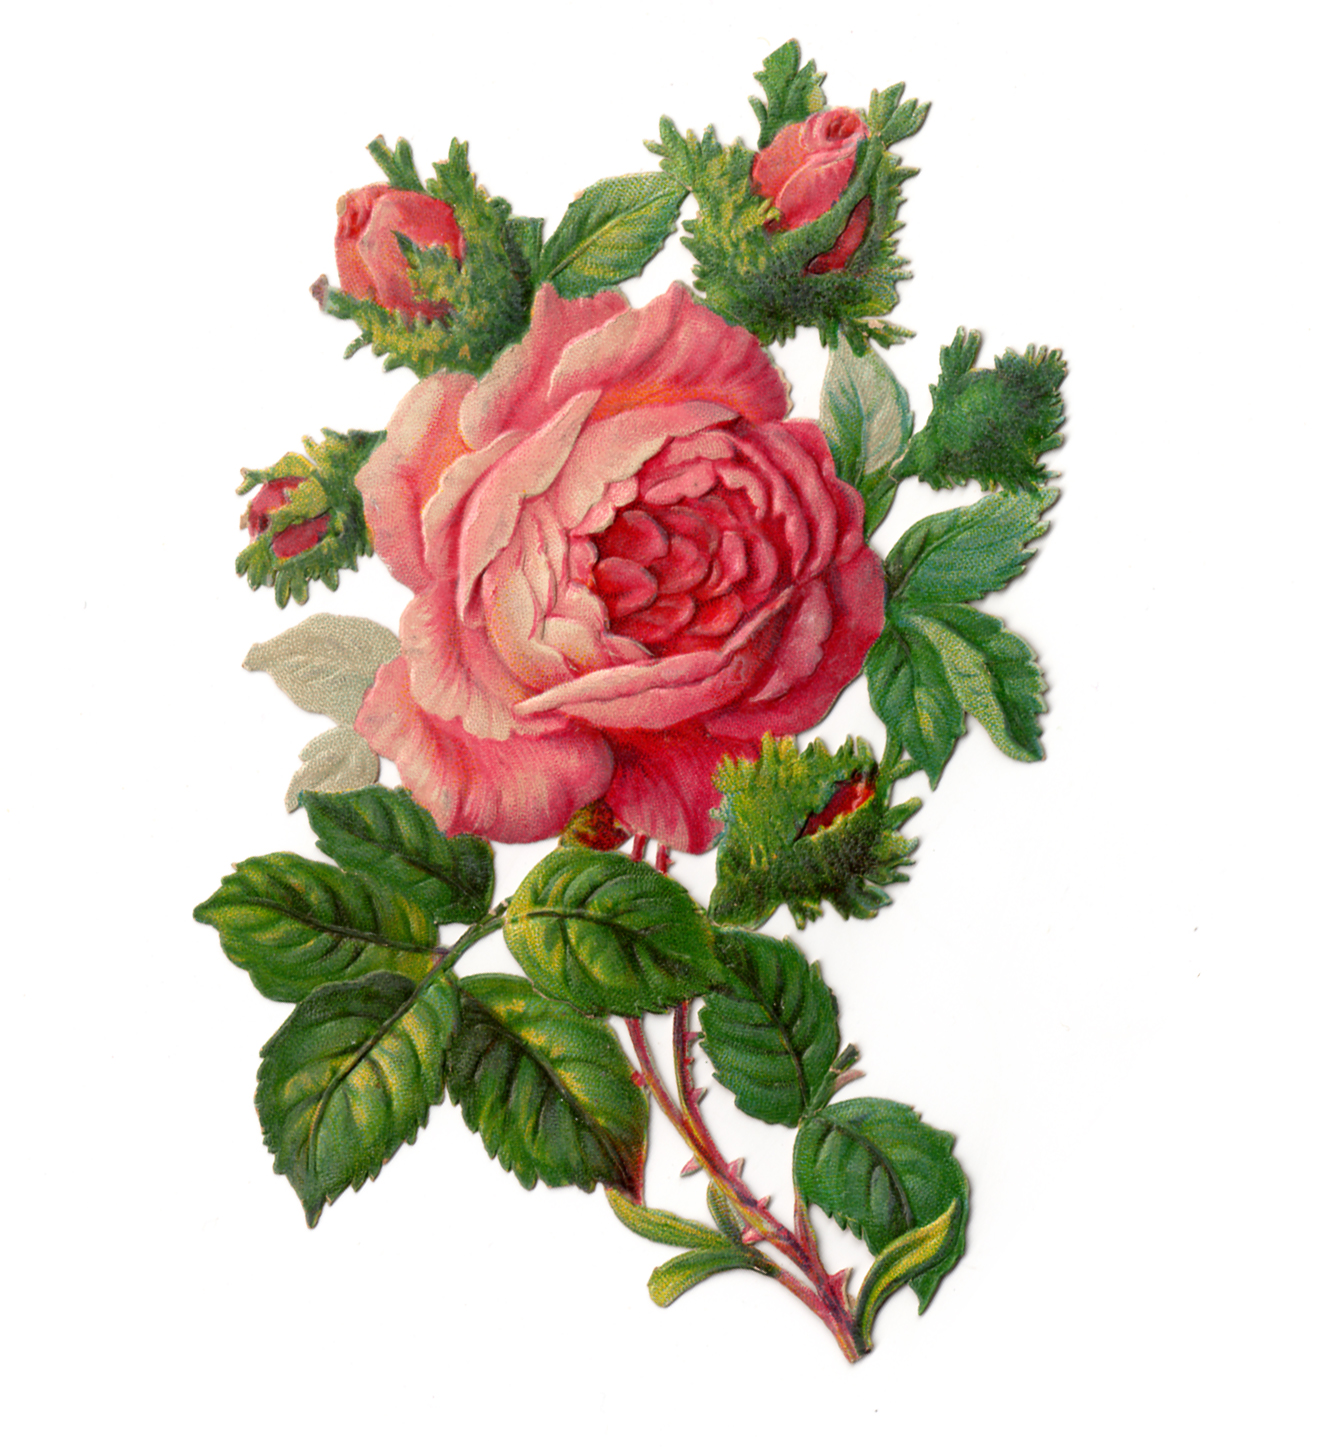 Varigated roses clipart #17